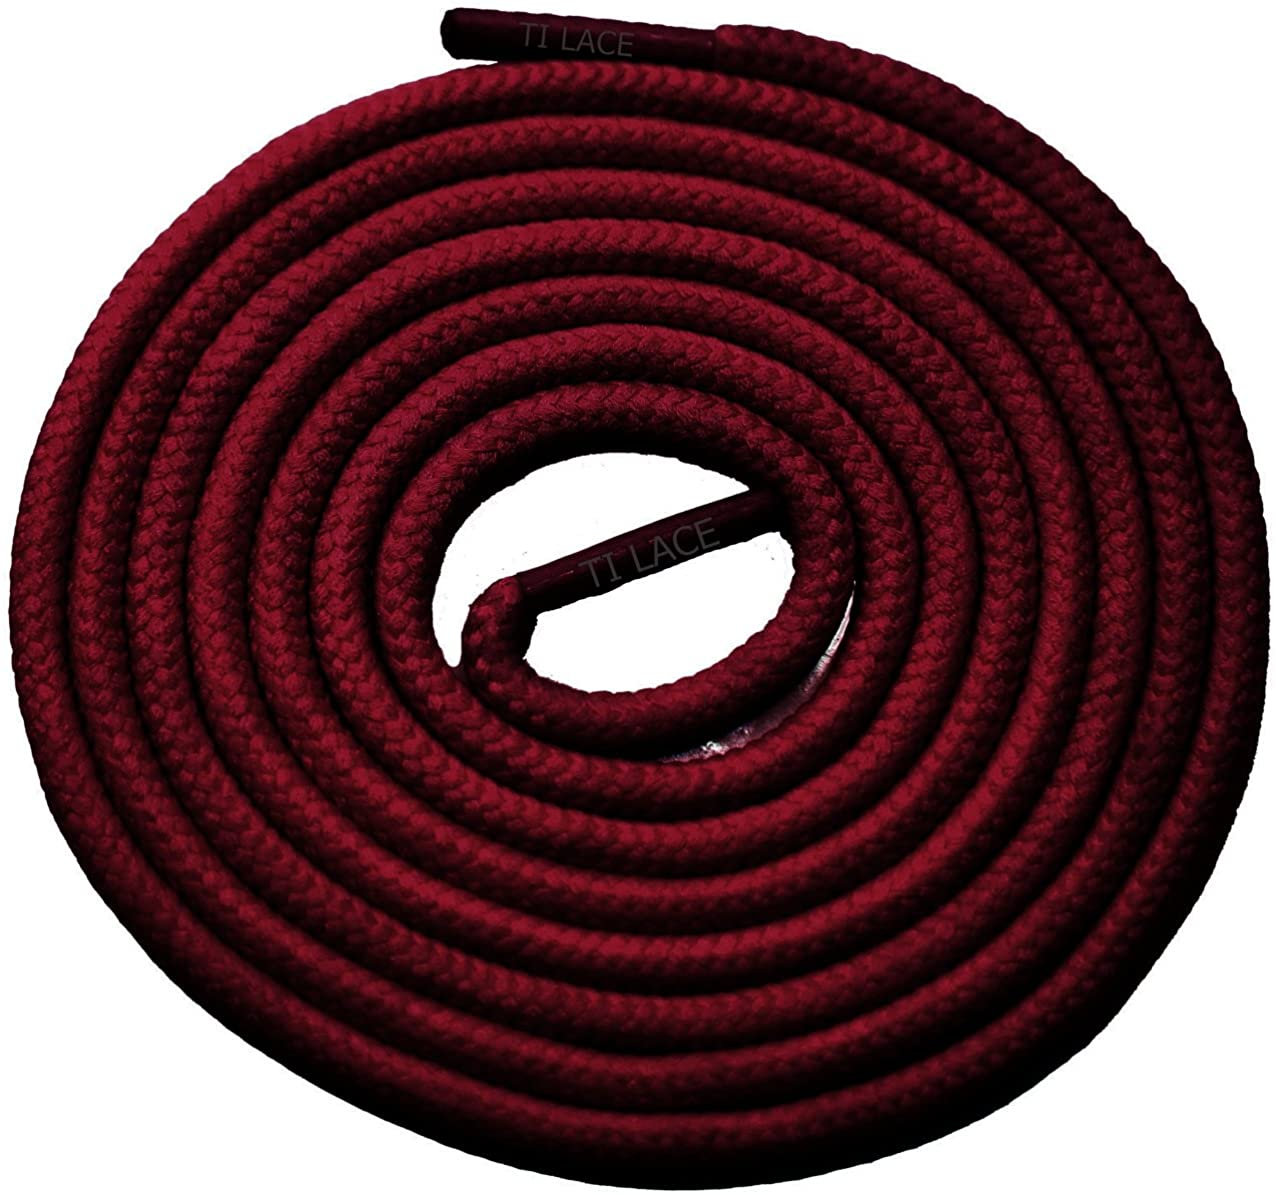 36 Burgundy 3/16 Round Thick Shoelace For All Womens Shoes